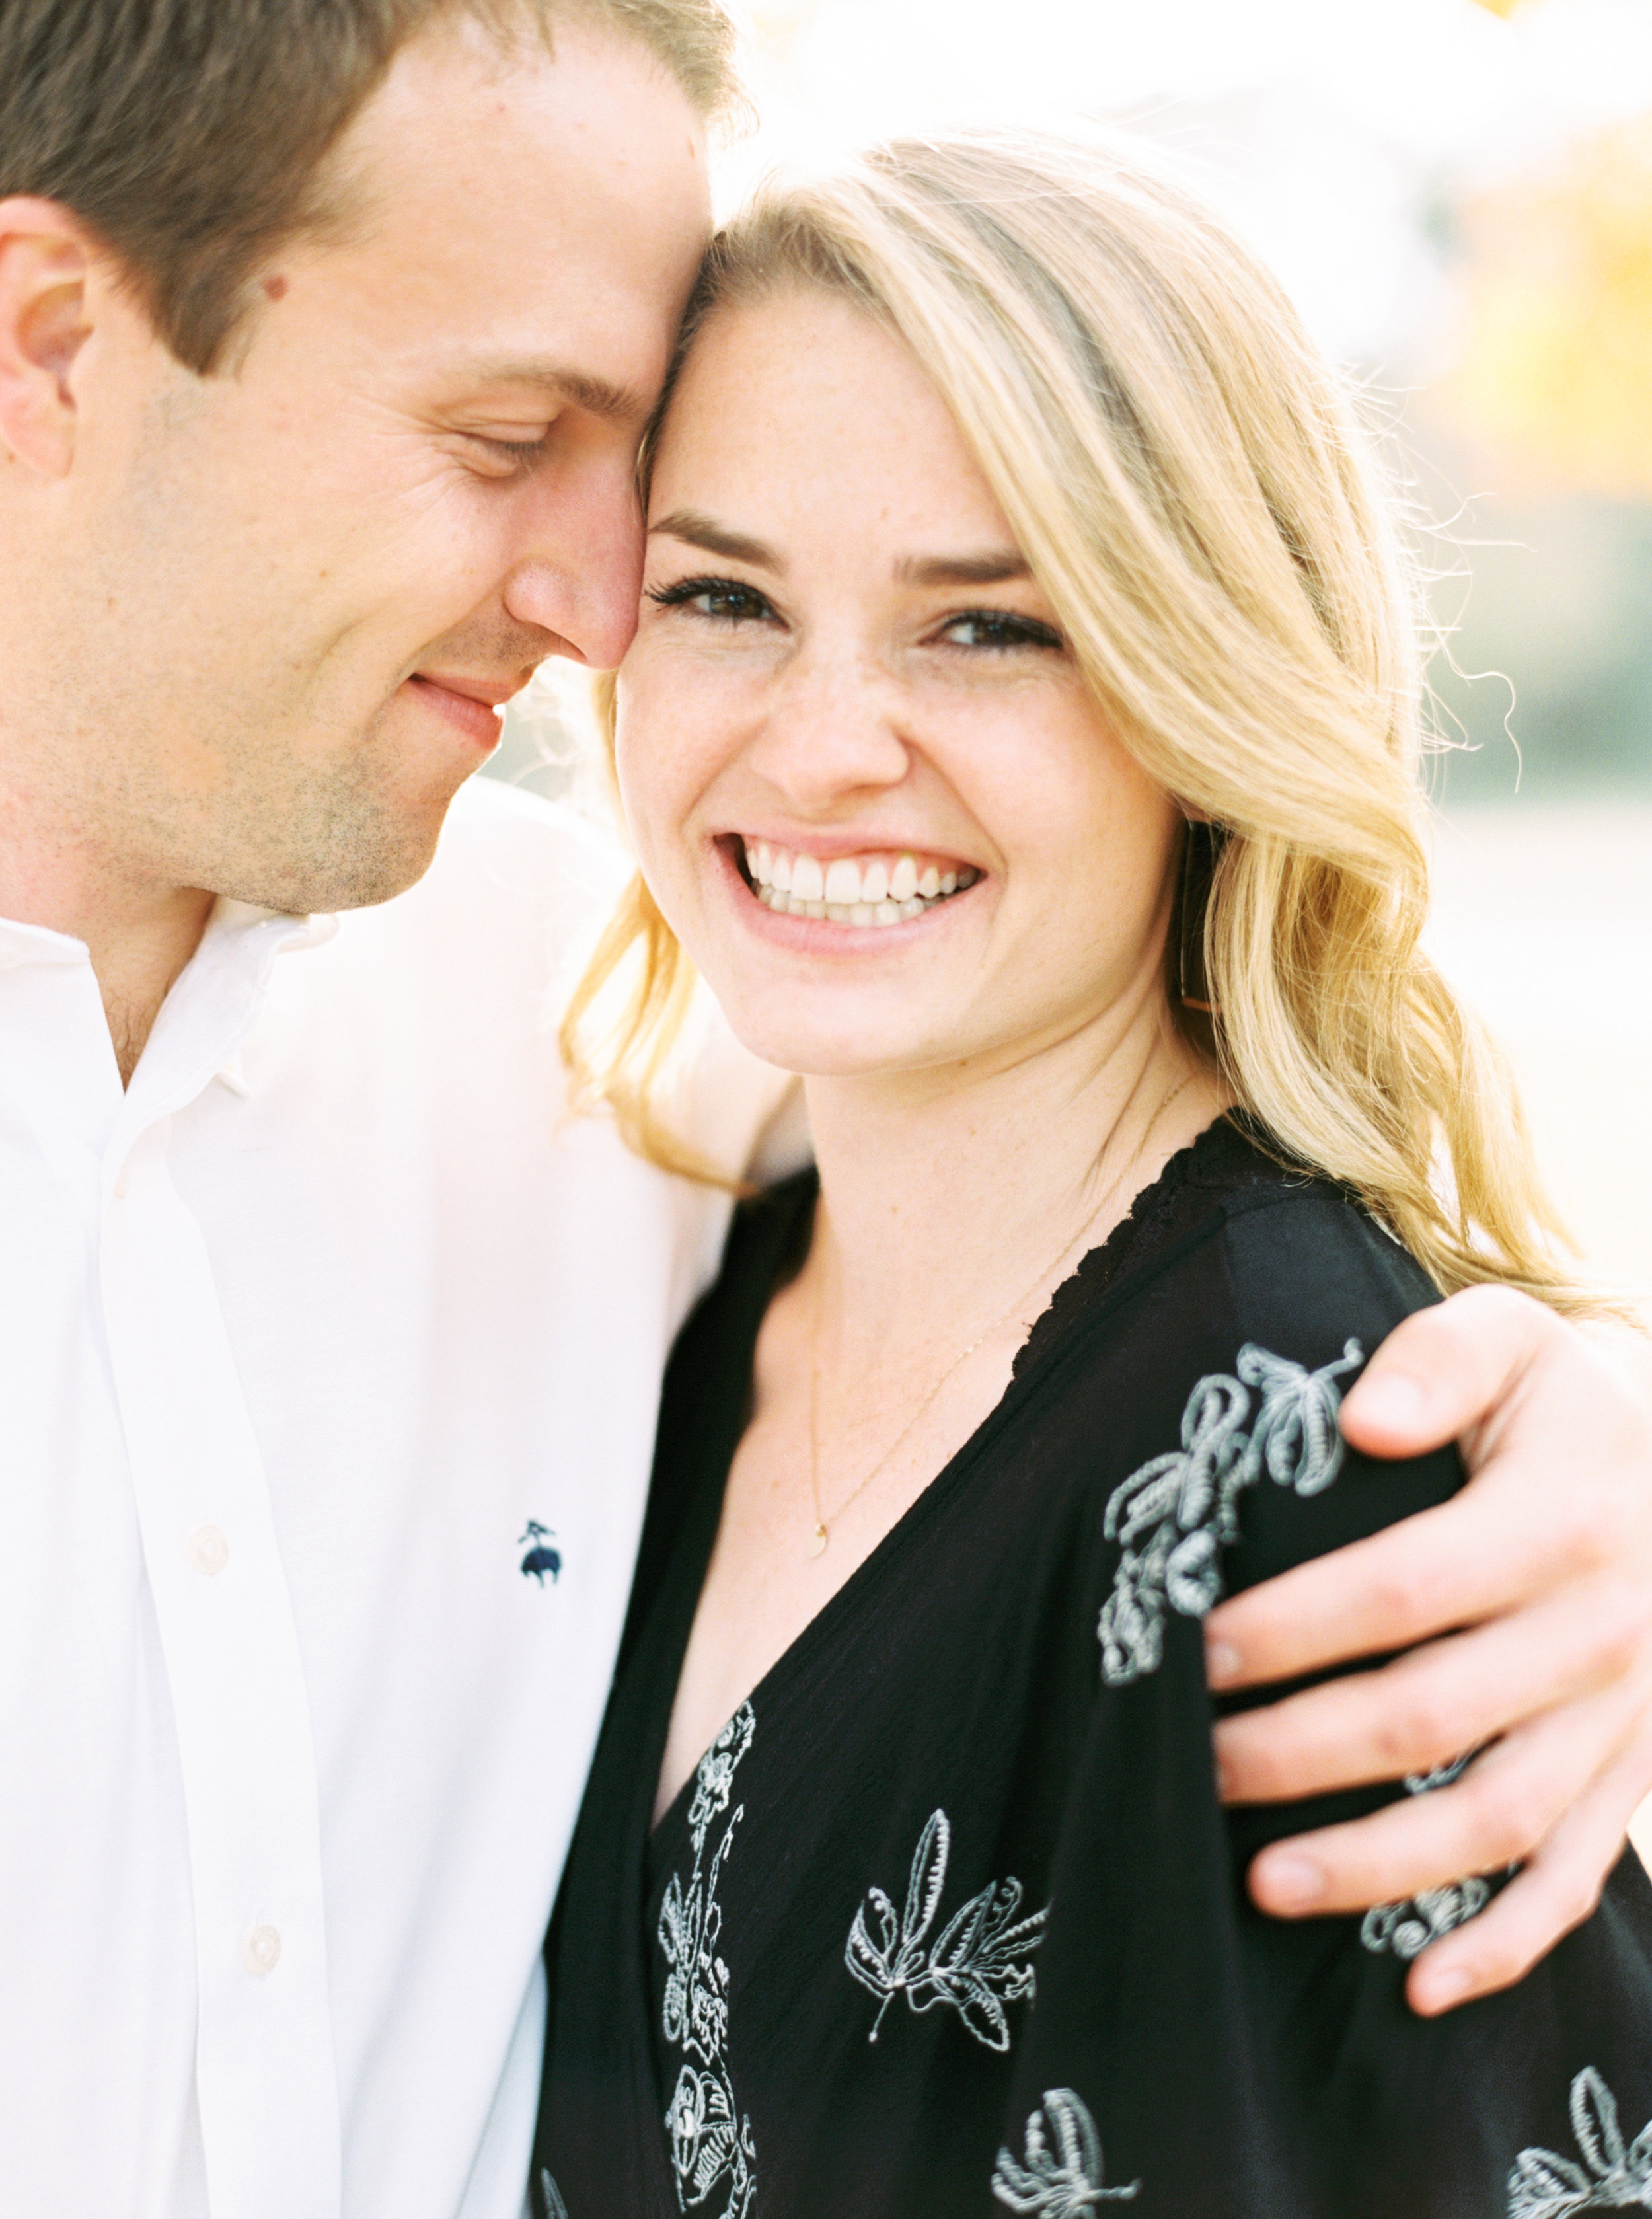 Engagement Session Outfits-75.jpg